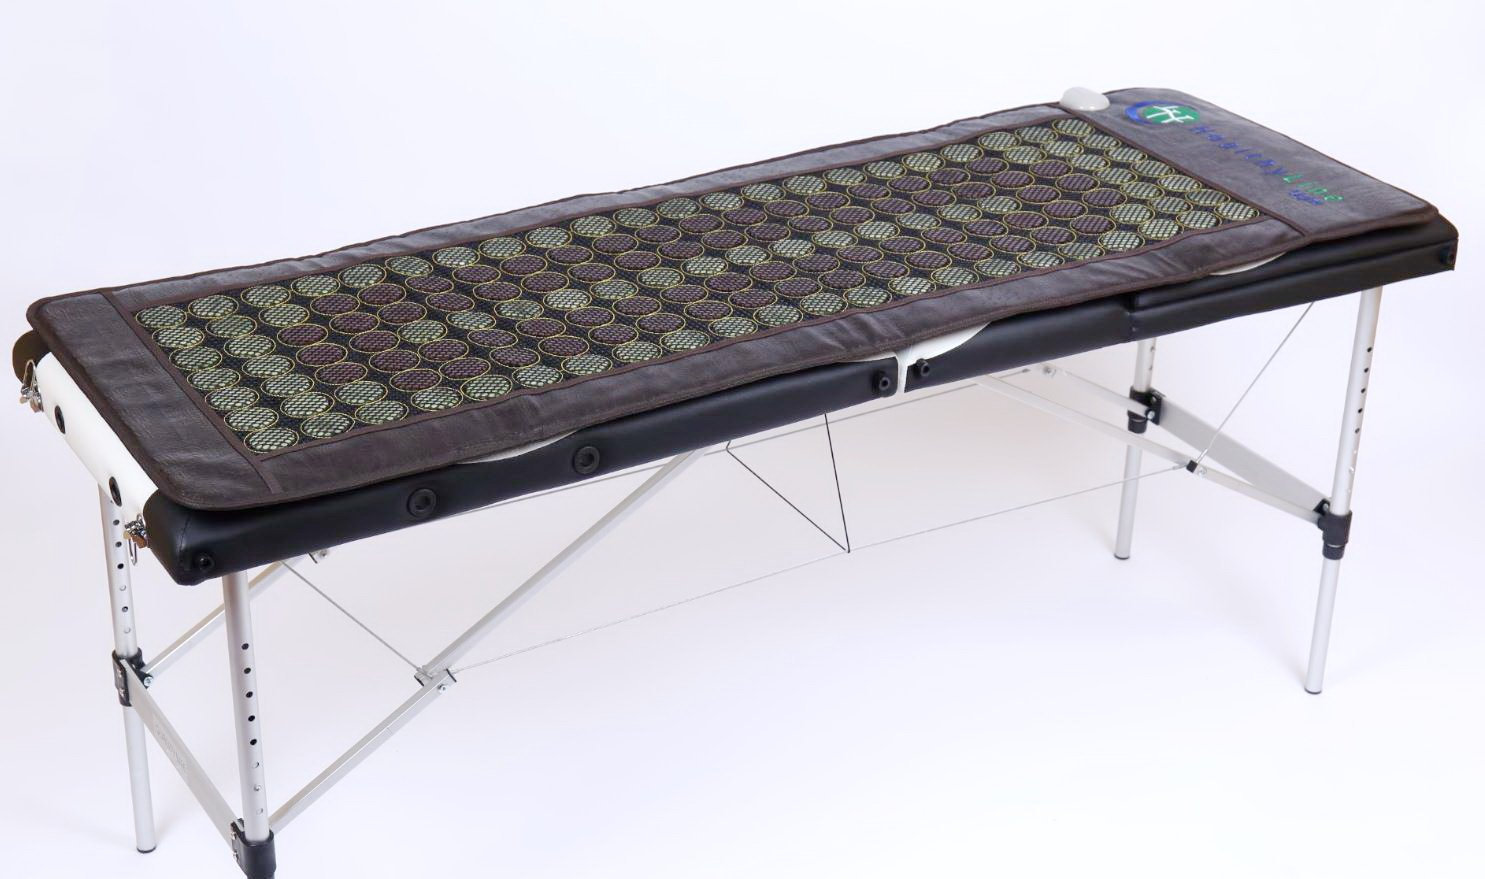 HealthyLine Far Infrared Heating Mat 72''x24'' Relieves Sore Muscles, Joints, Arthritis Natural Jade & Tourmaline with Negative Ions InfraMat Pro Most Flexible Model-Easy to roll-up(Light & Firm) by HealthyLine (Image #5)